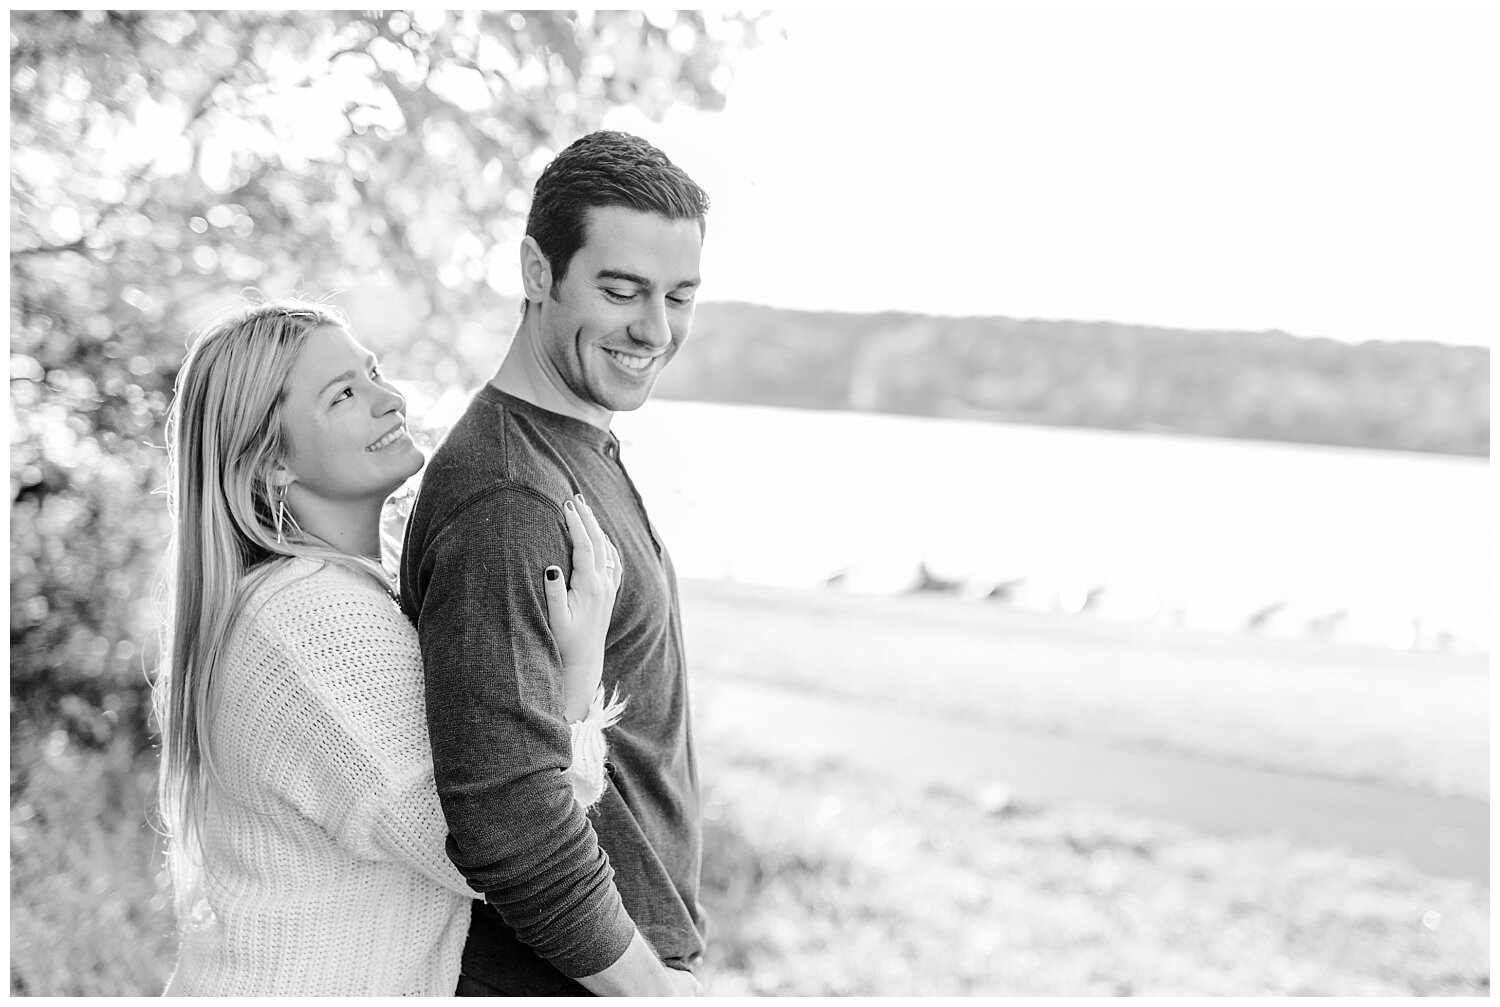 Peace Valley Park Doylestown bucks county PA fall sunrise engagement session  lehigh valley pennsylvania based wedding and lifestyle photographer Jeannie Lytle of Lytle Photography Company_0016.jpg